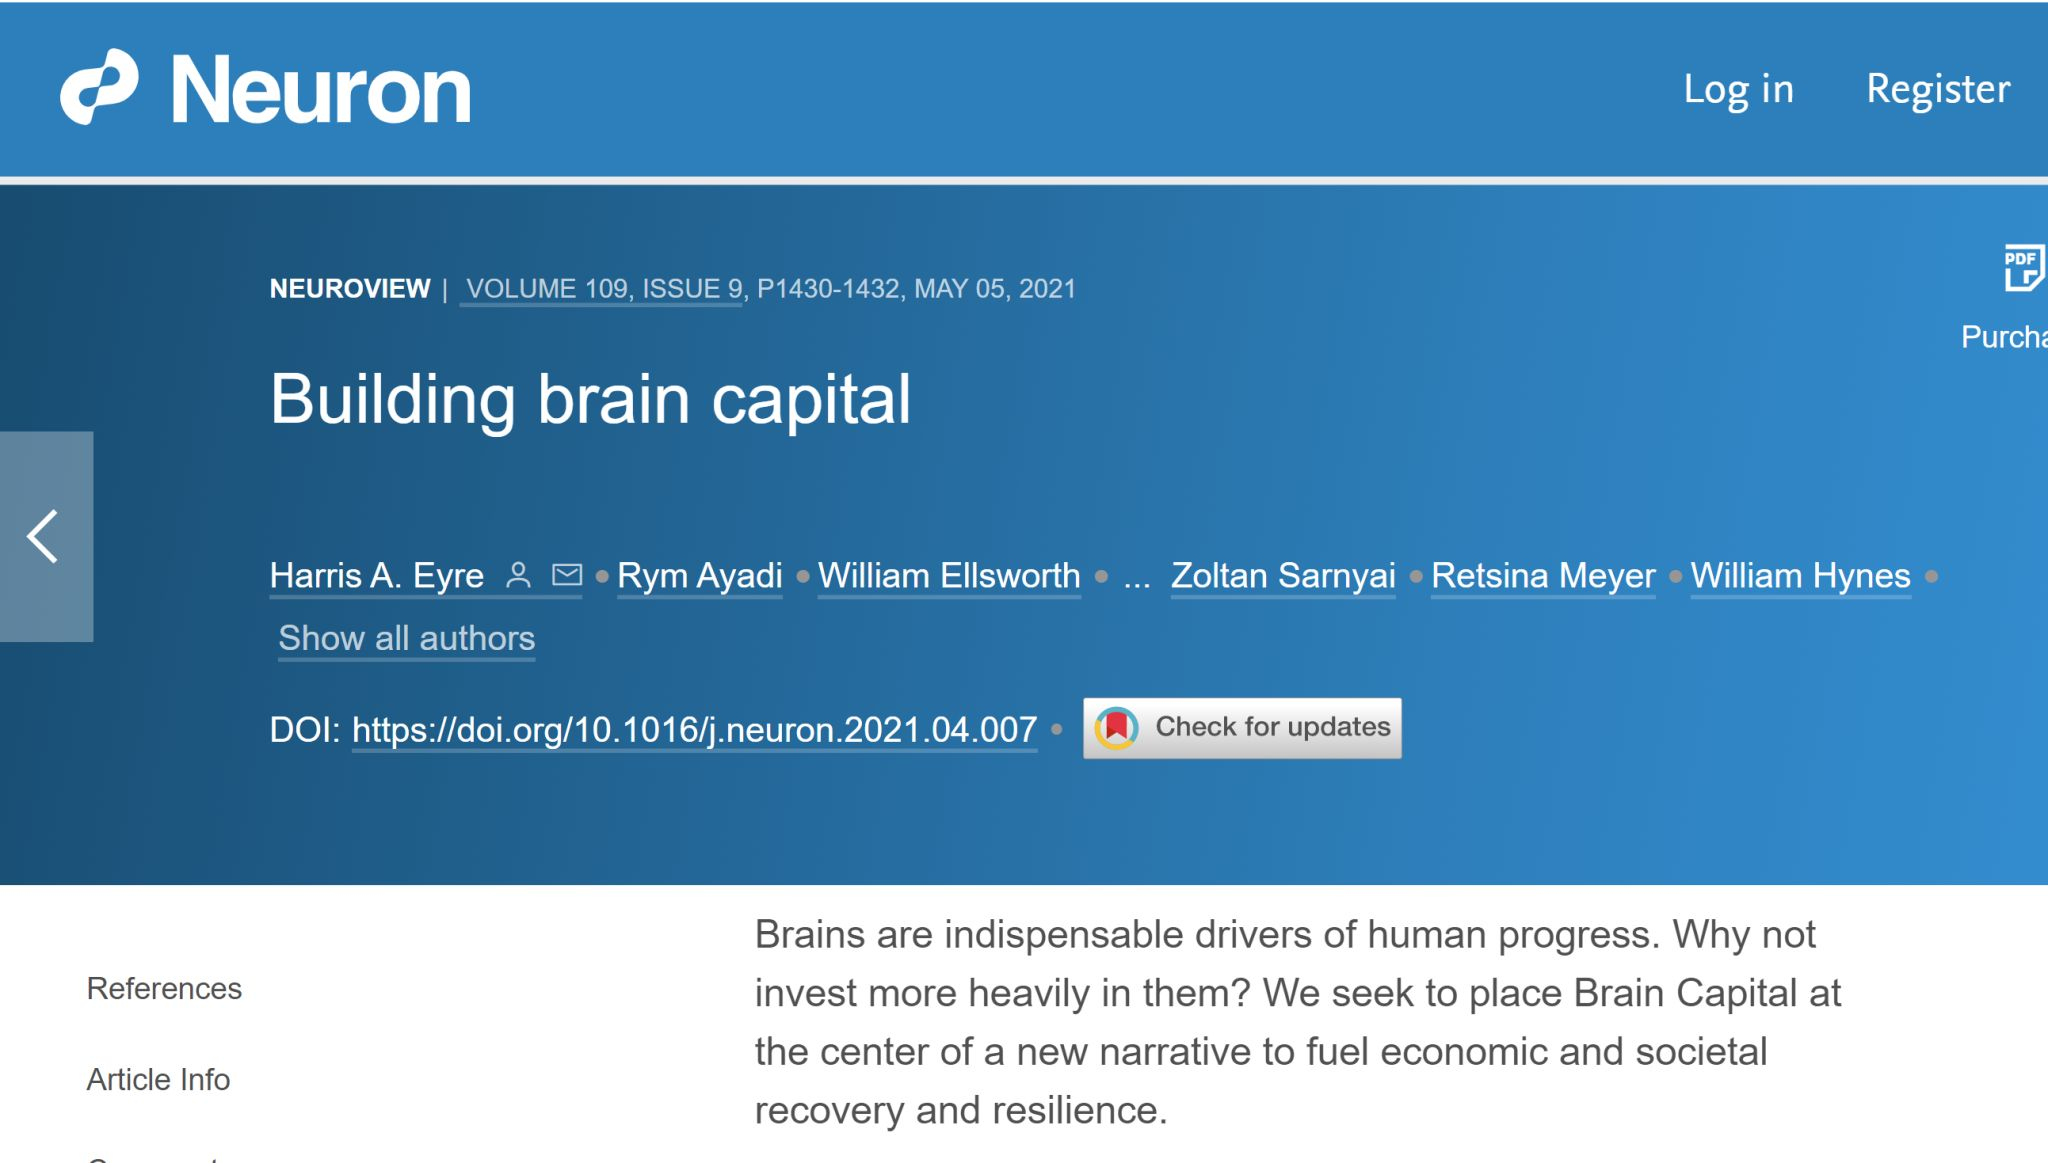 Brain Capital article published by Neuron